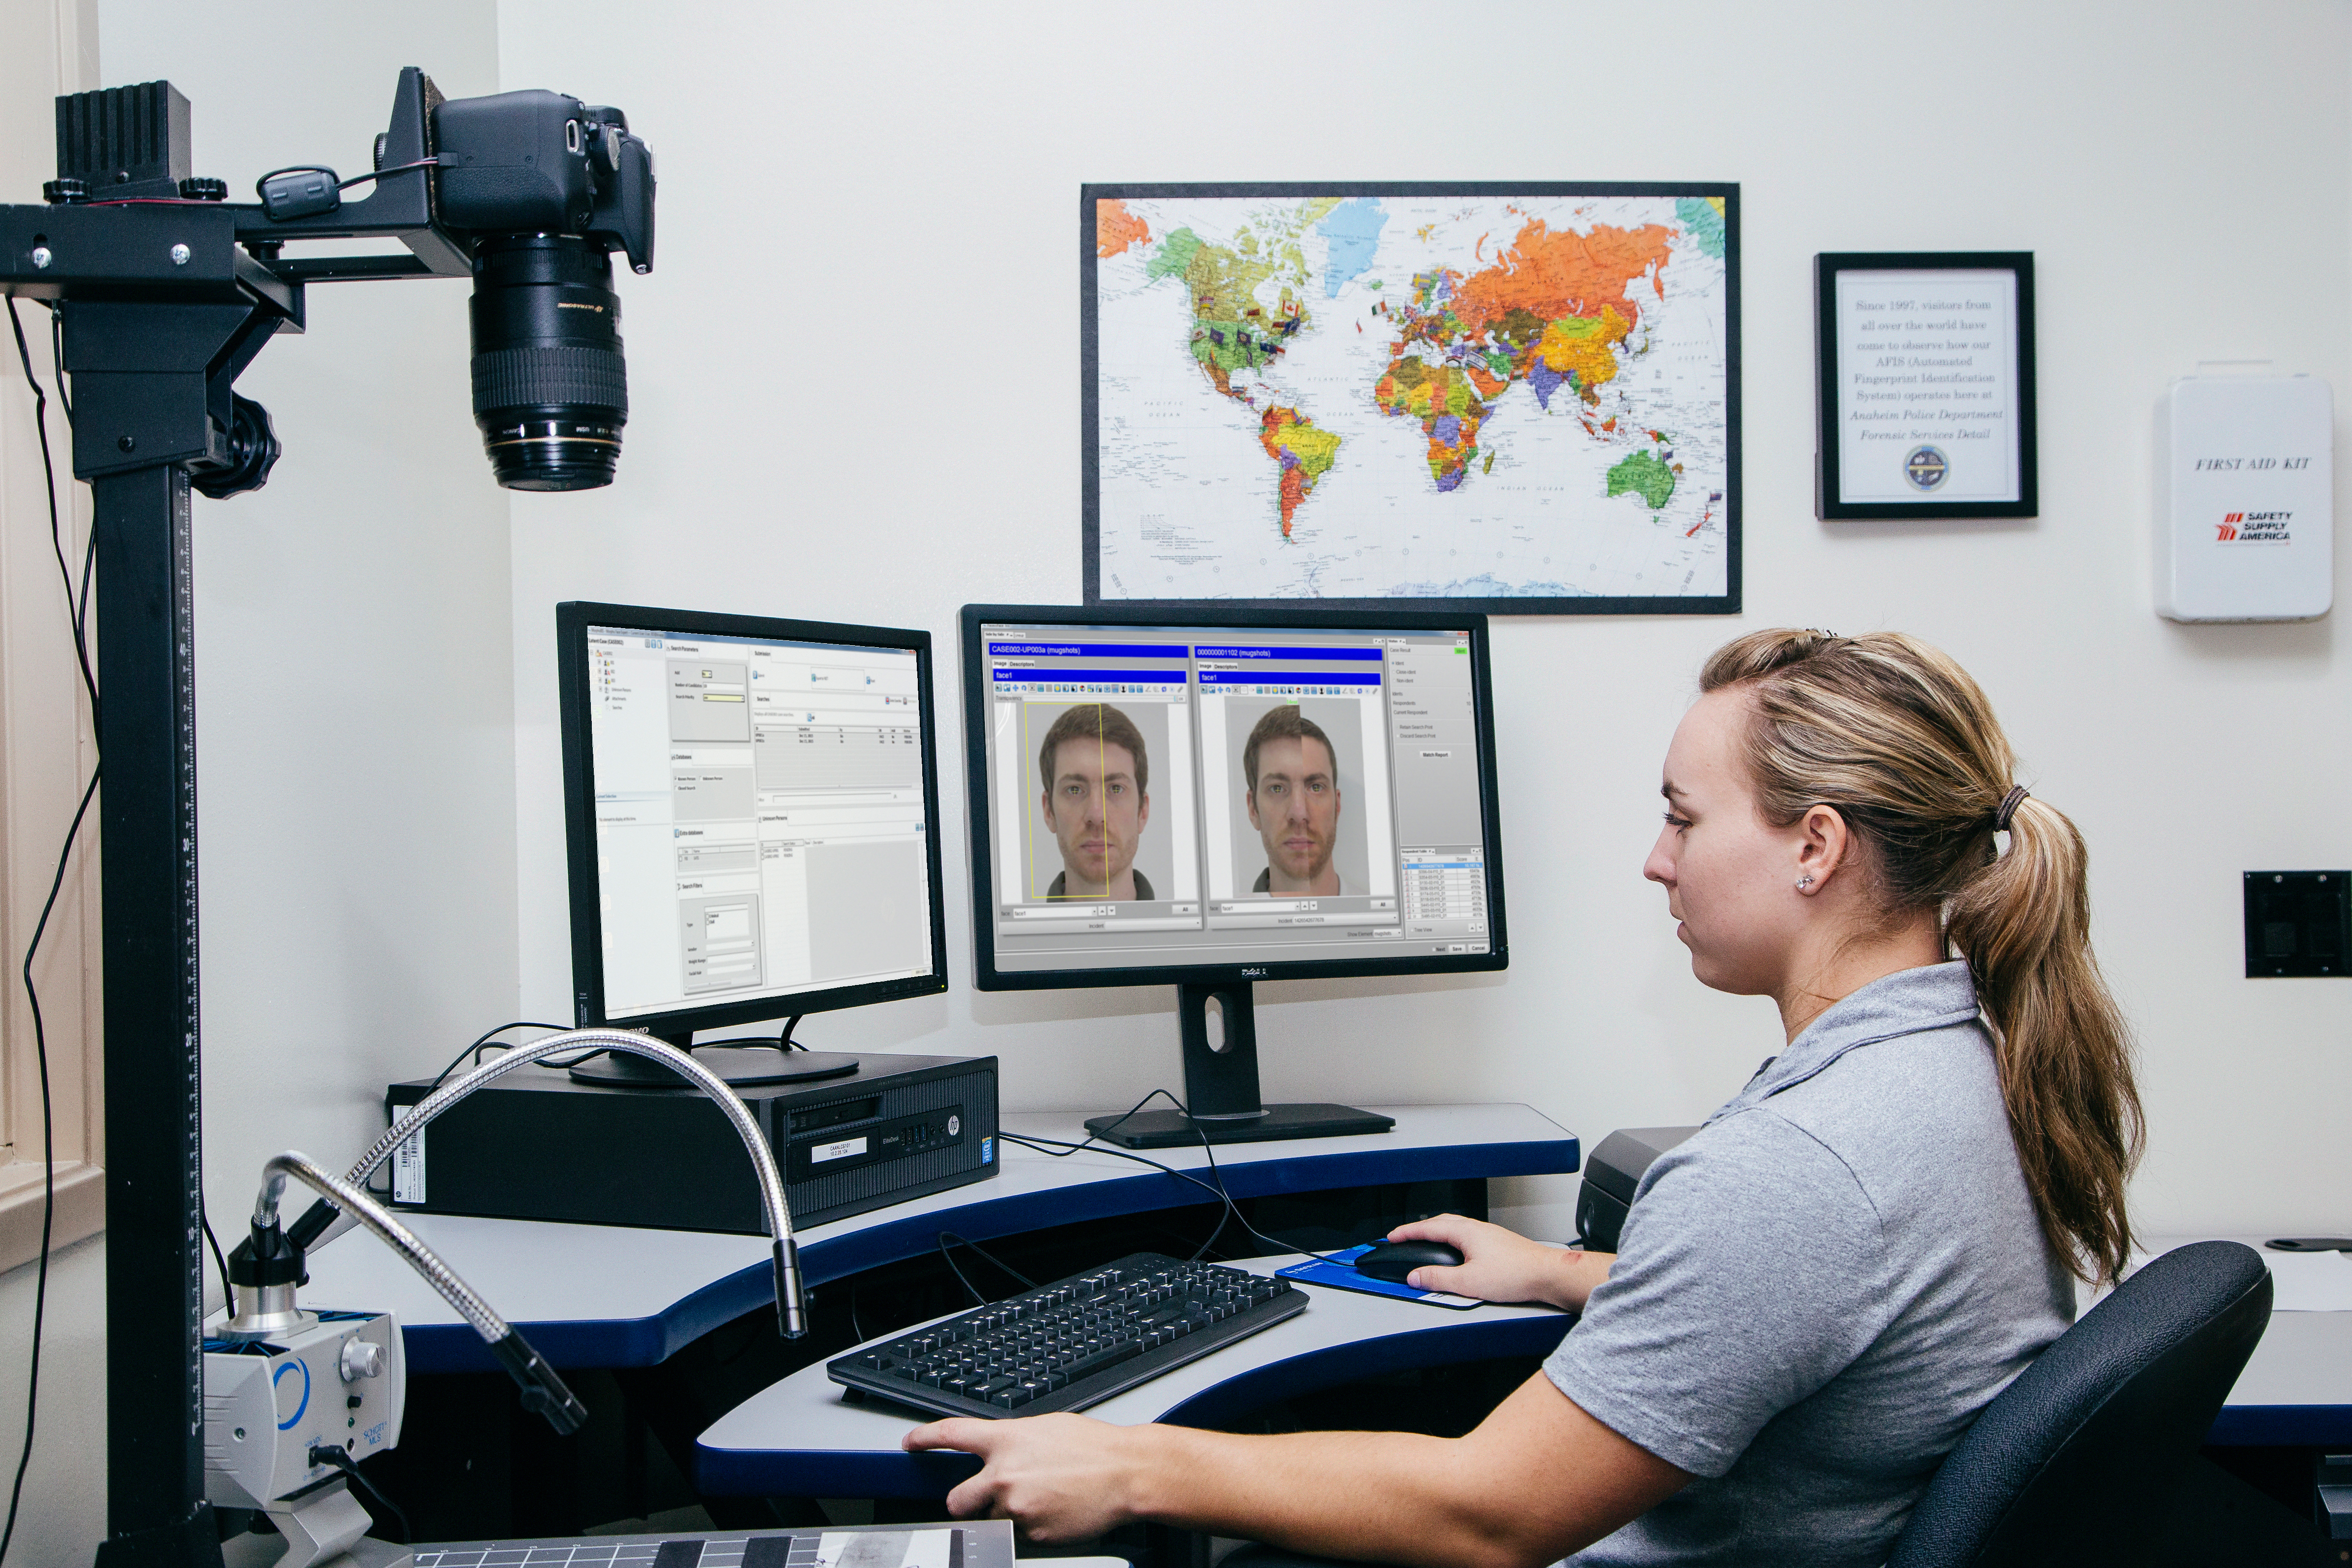 IDEMIA Partnering with Unisys to Provide Biometric Services for Home ...